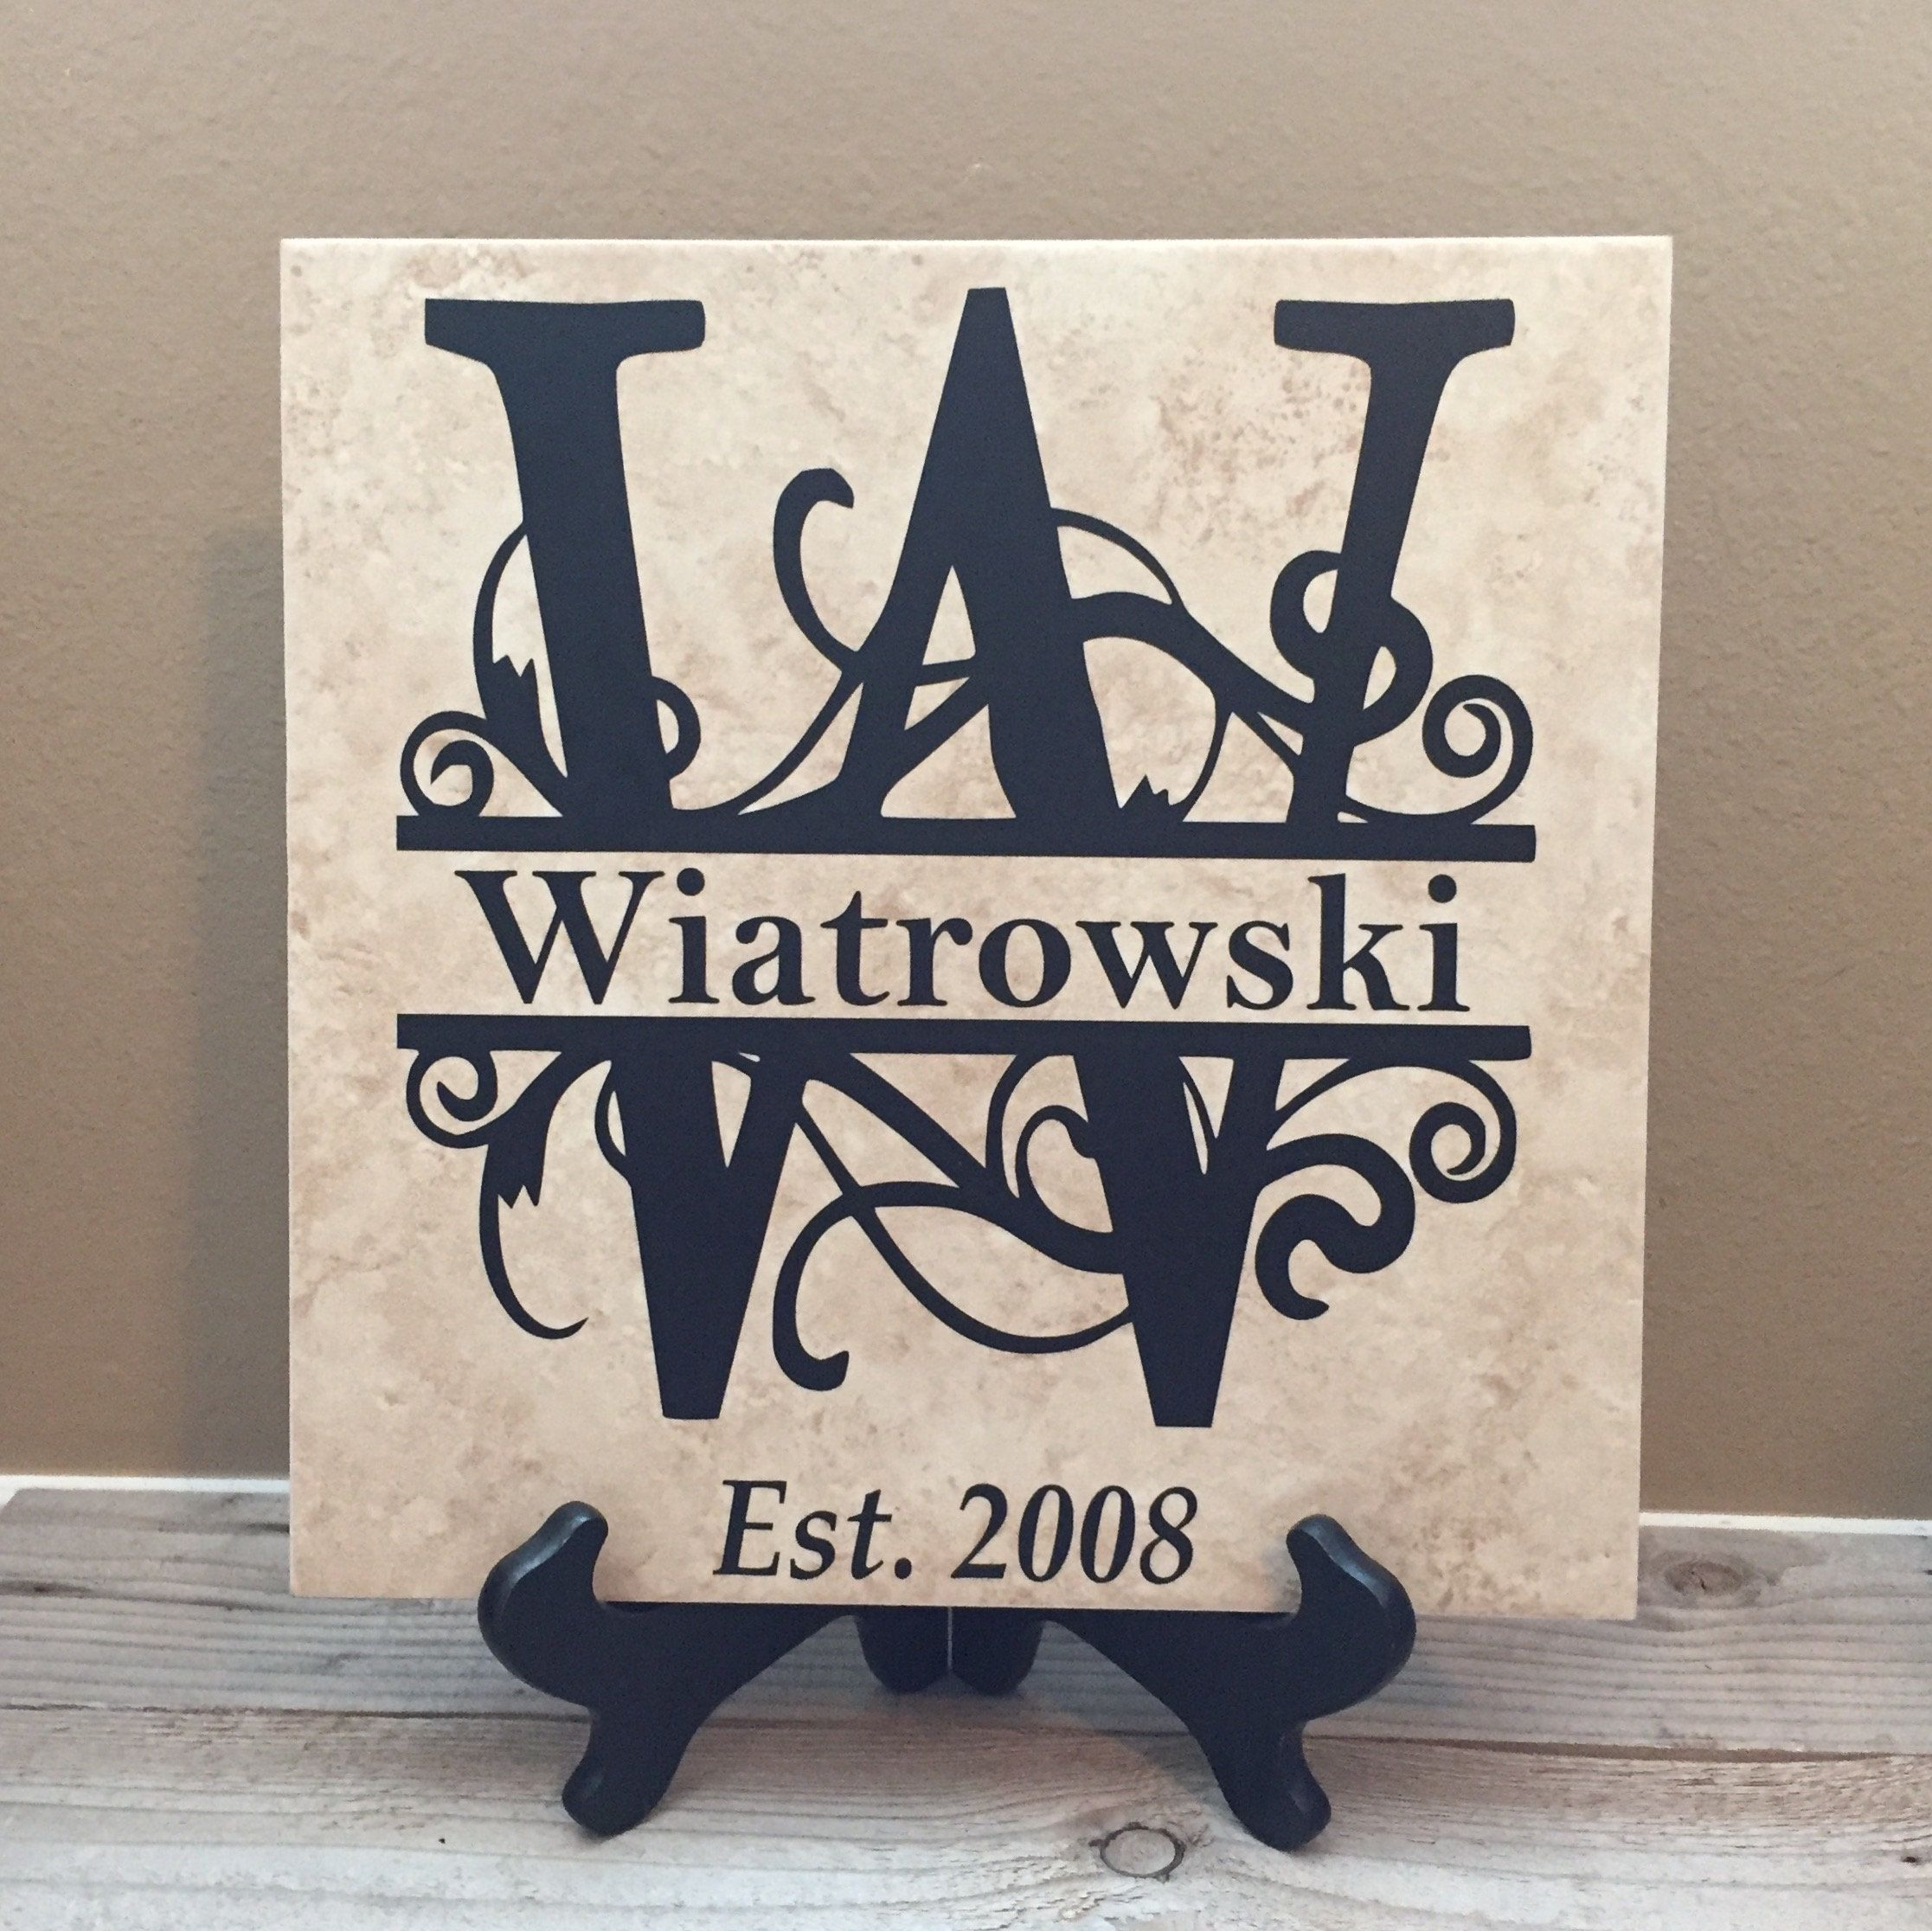 Wedding Gifts Personalized Established Sign Gifts For Etsy In 2020 Wedding Shower Gift Personalized Wedding Gifts Beautiful Personalized Gifts